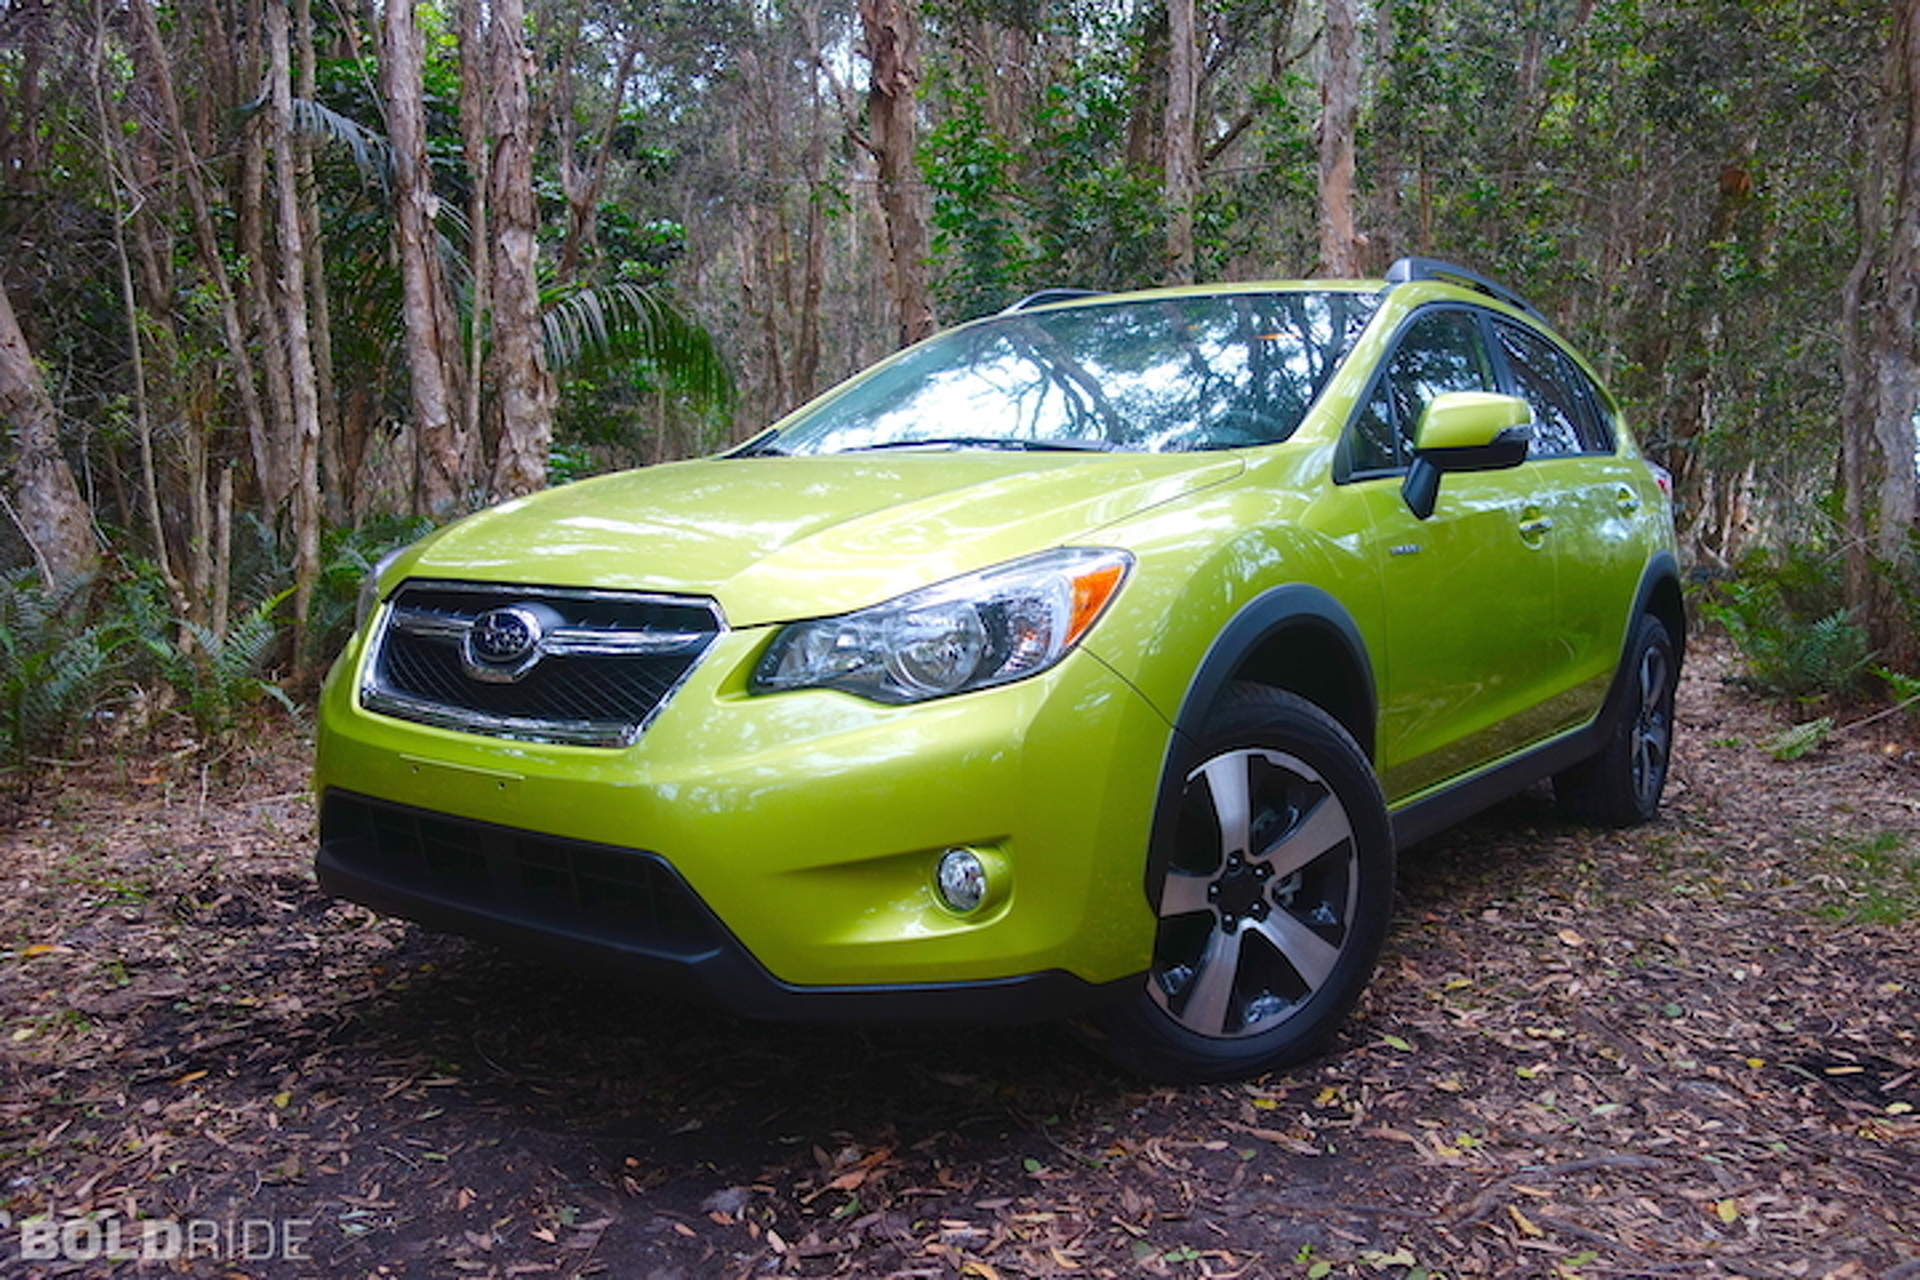 2014 Subaru XV Crosstrek Hybrid Review: When Green Isn't Always Greener…